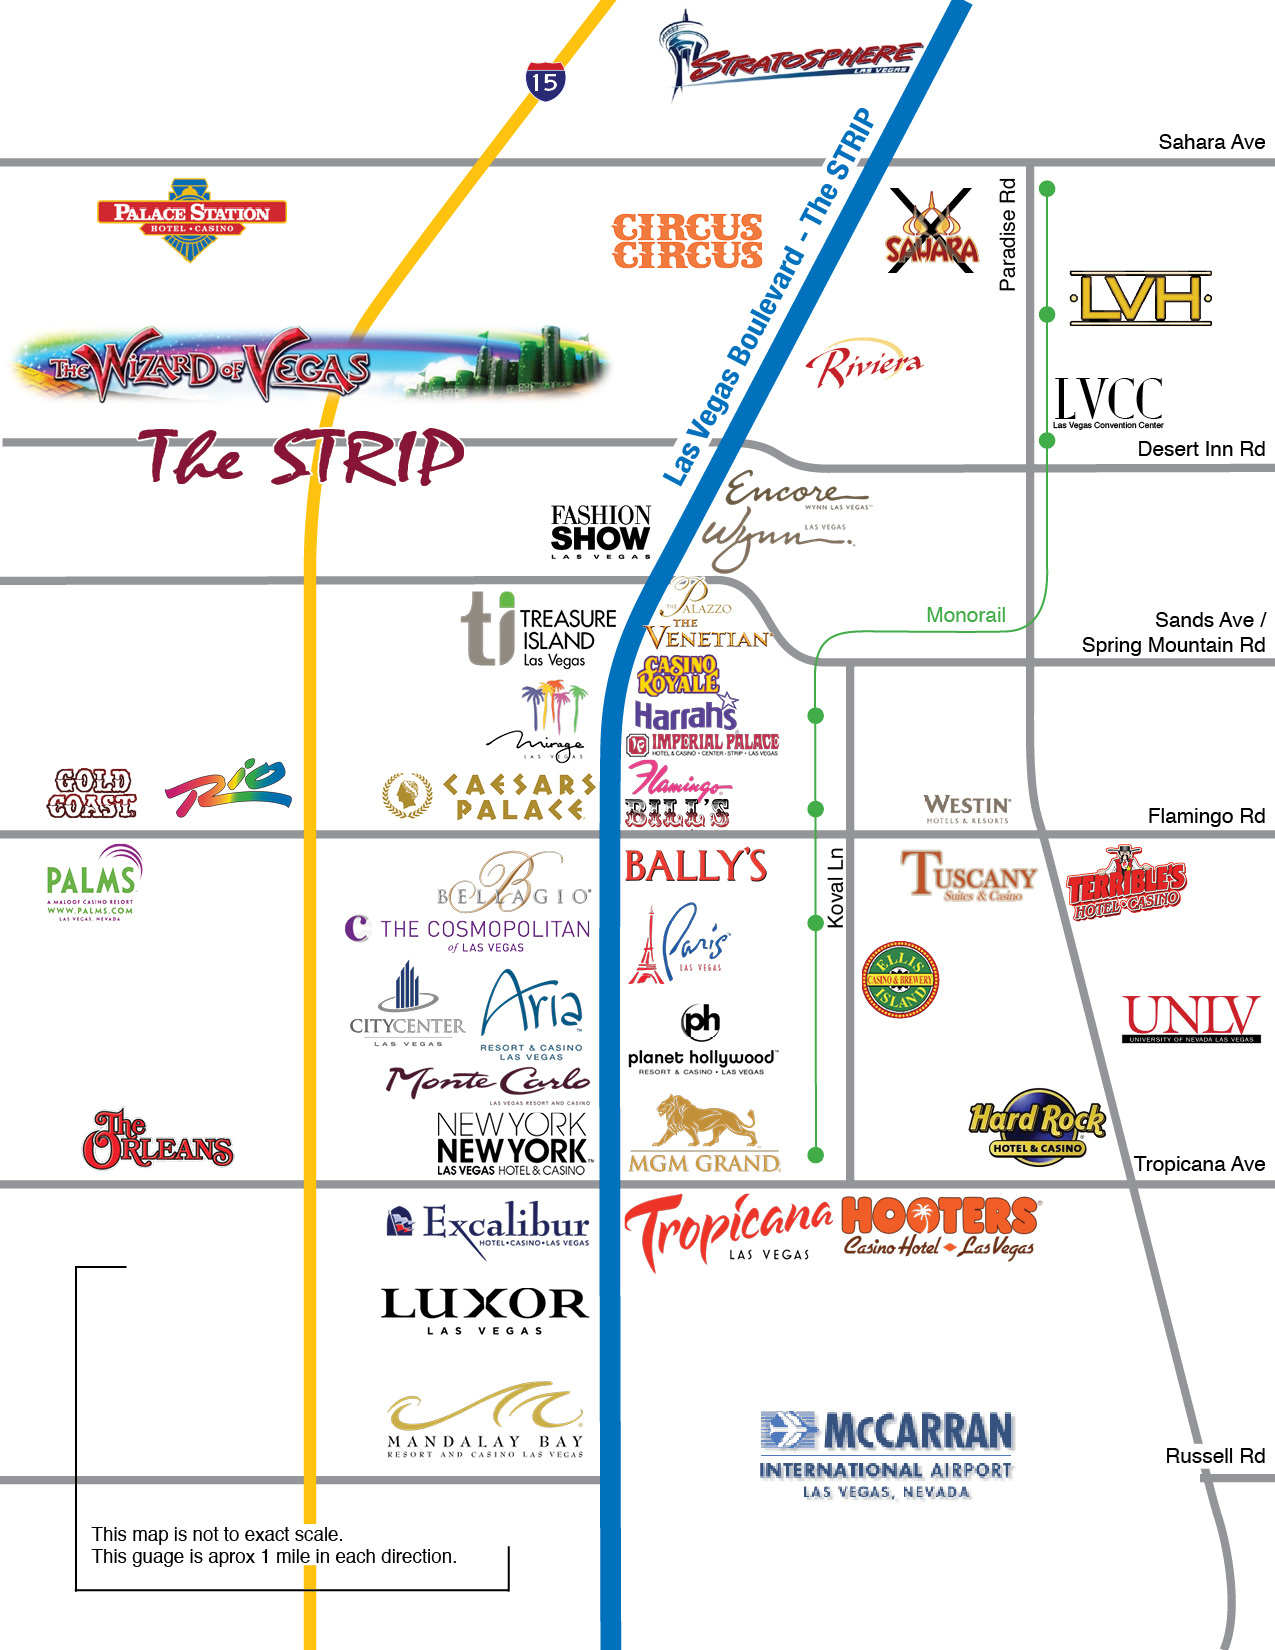 Map Of Las Vegas Strip Showing Hotels And Monorail 2018